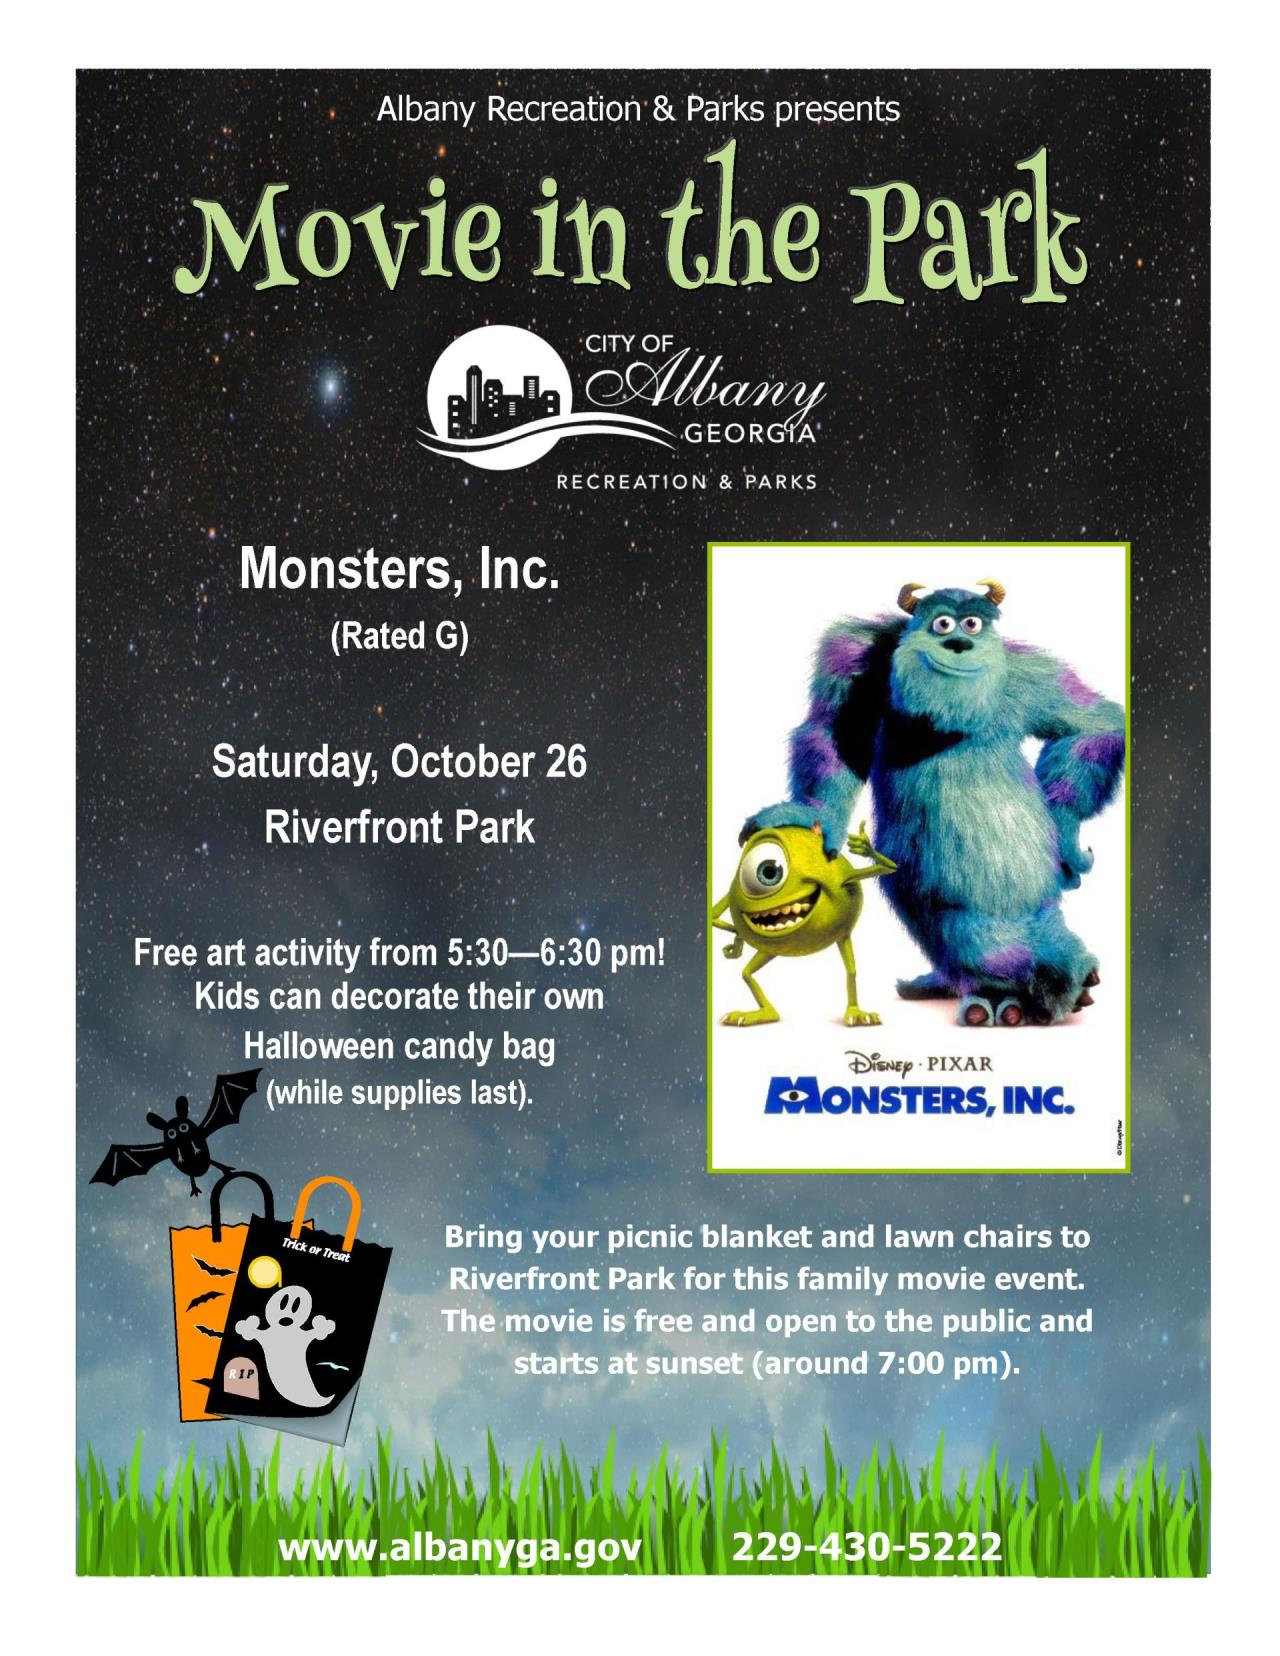 Monsters_Inc._Movie_in_the_Park